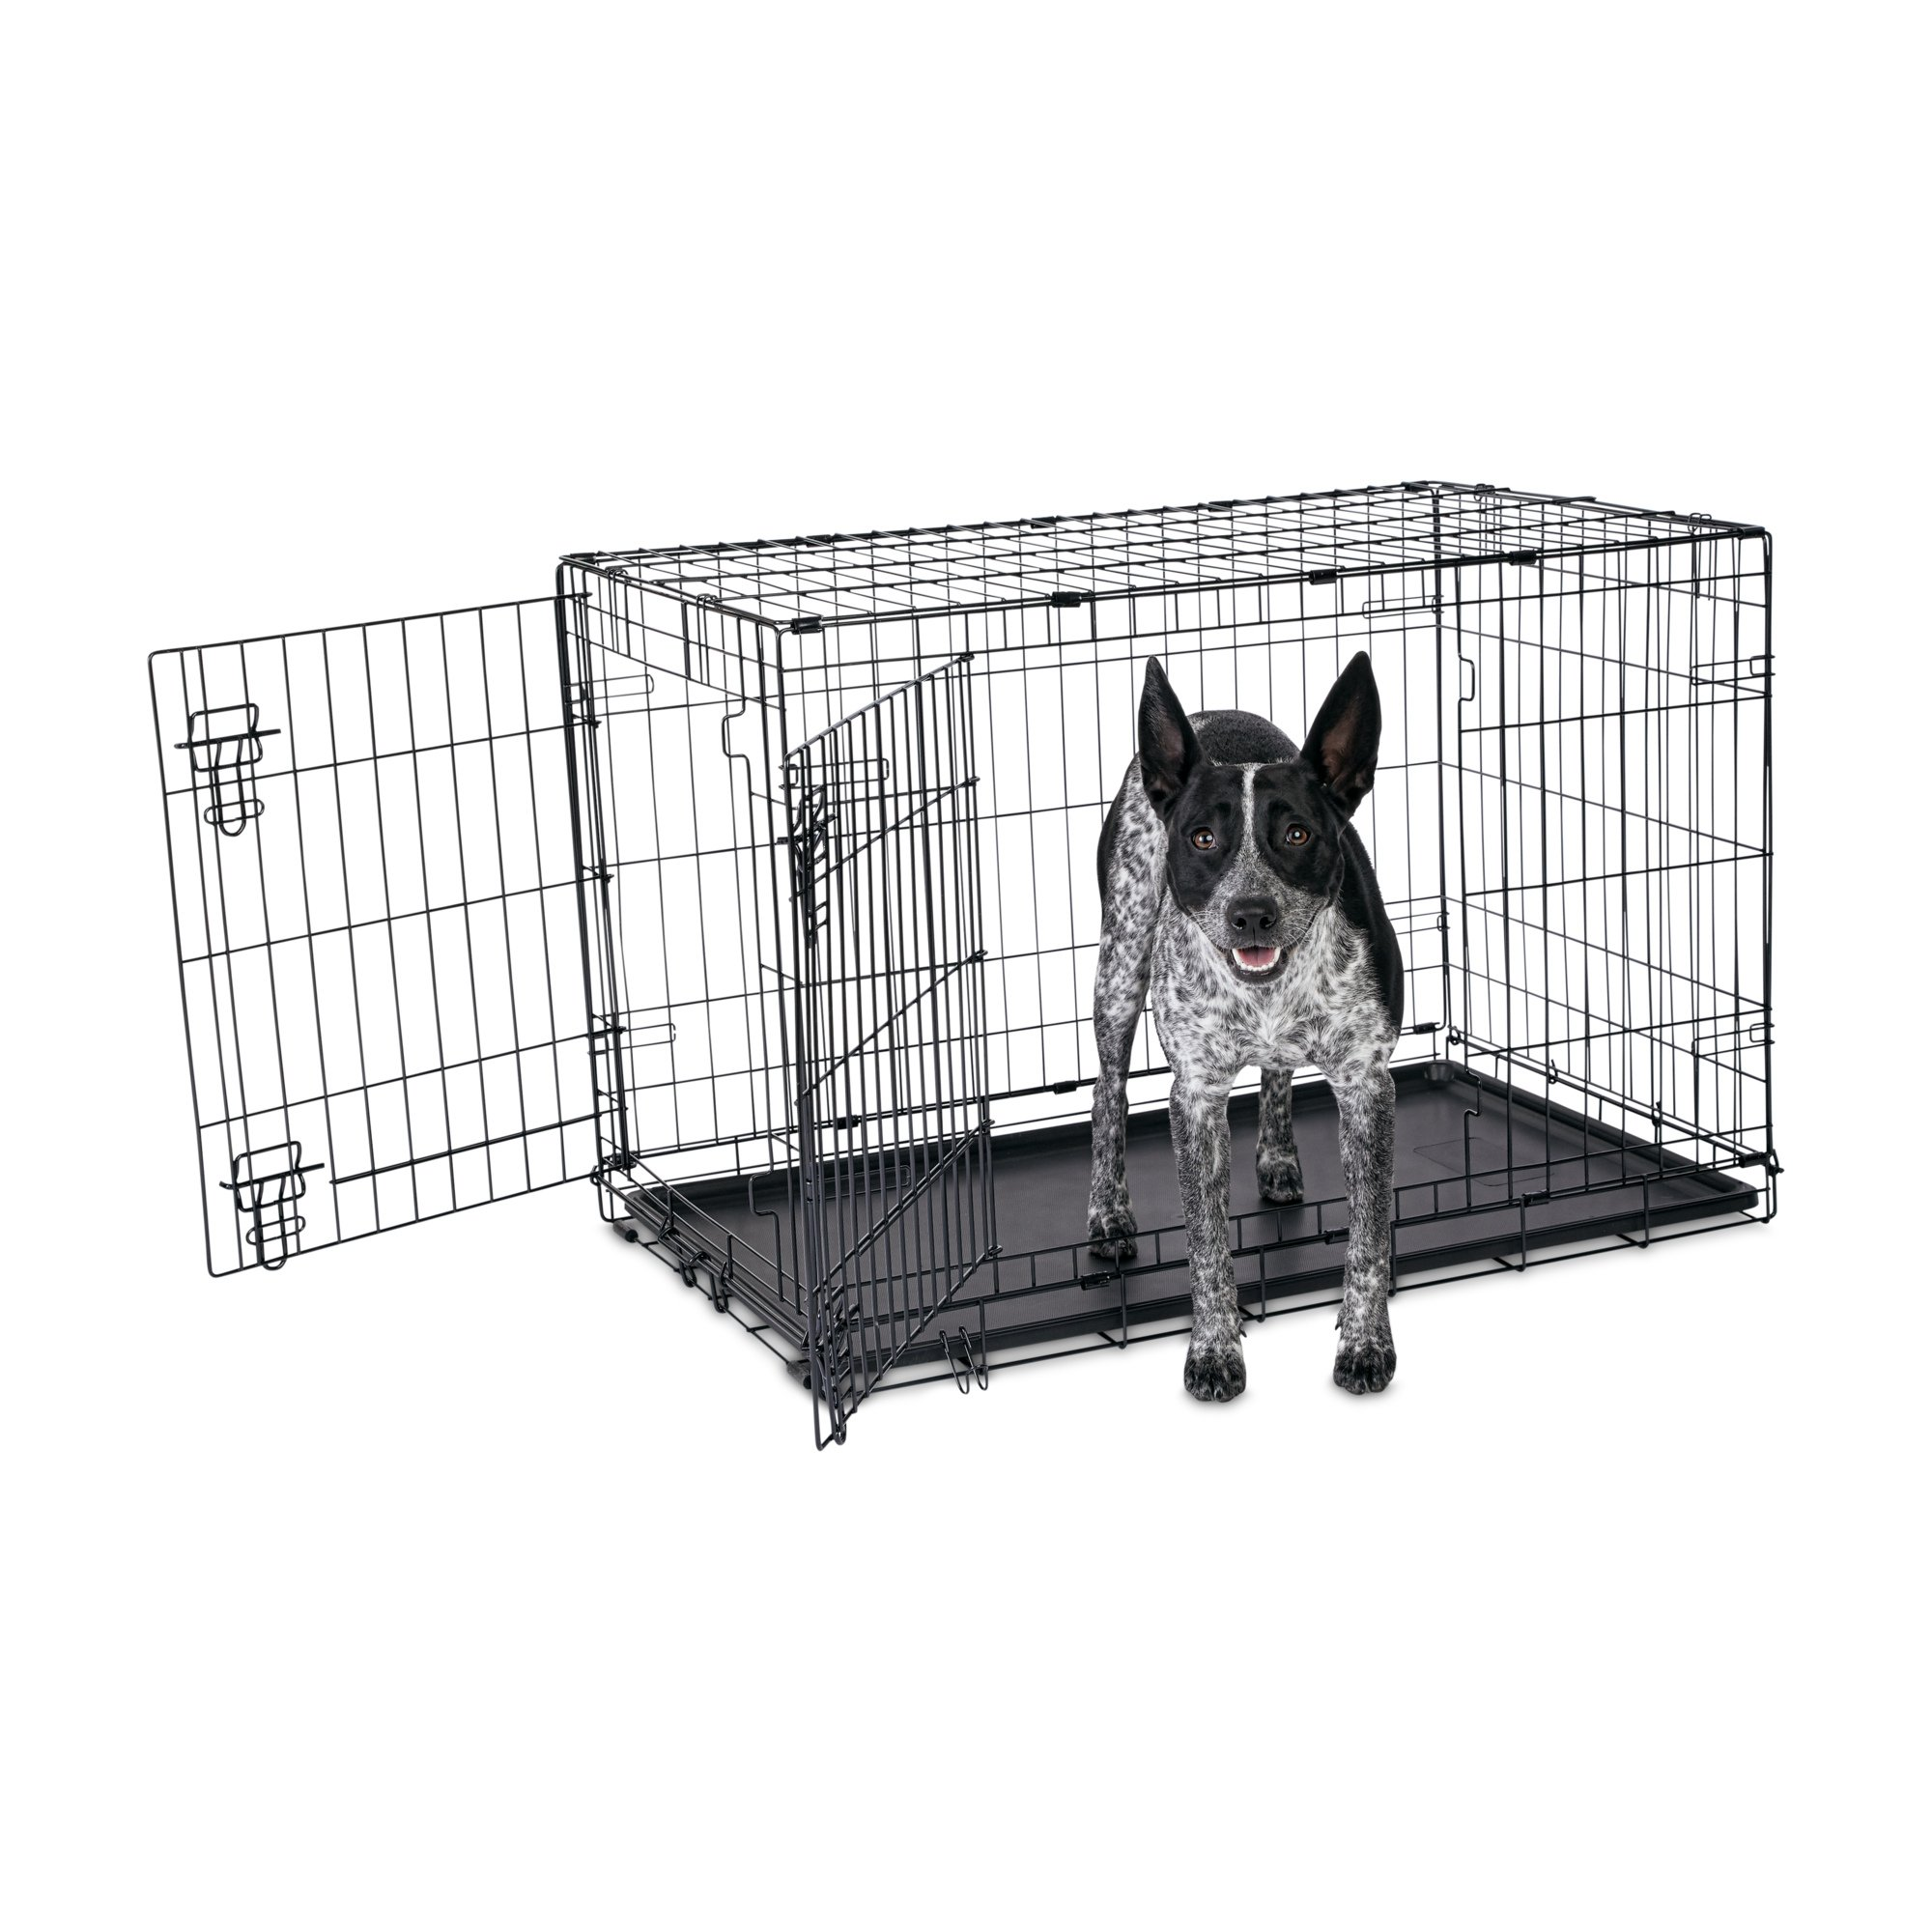 Animaze 2 Door Folding Dog Crate Petco